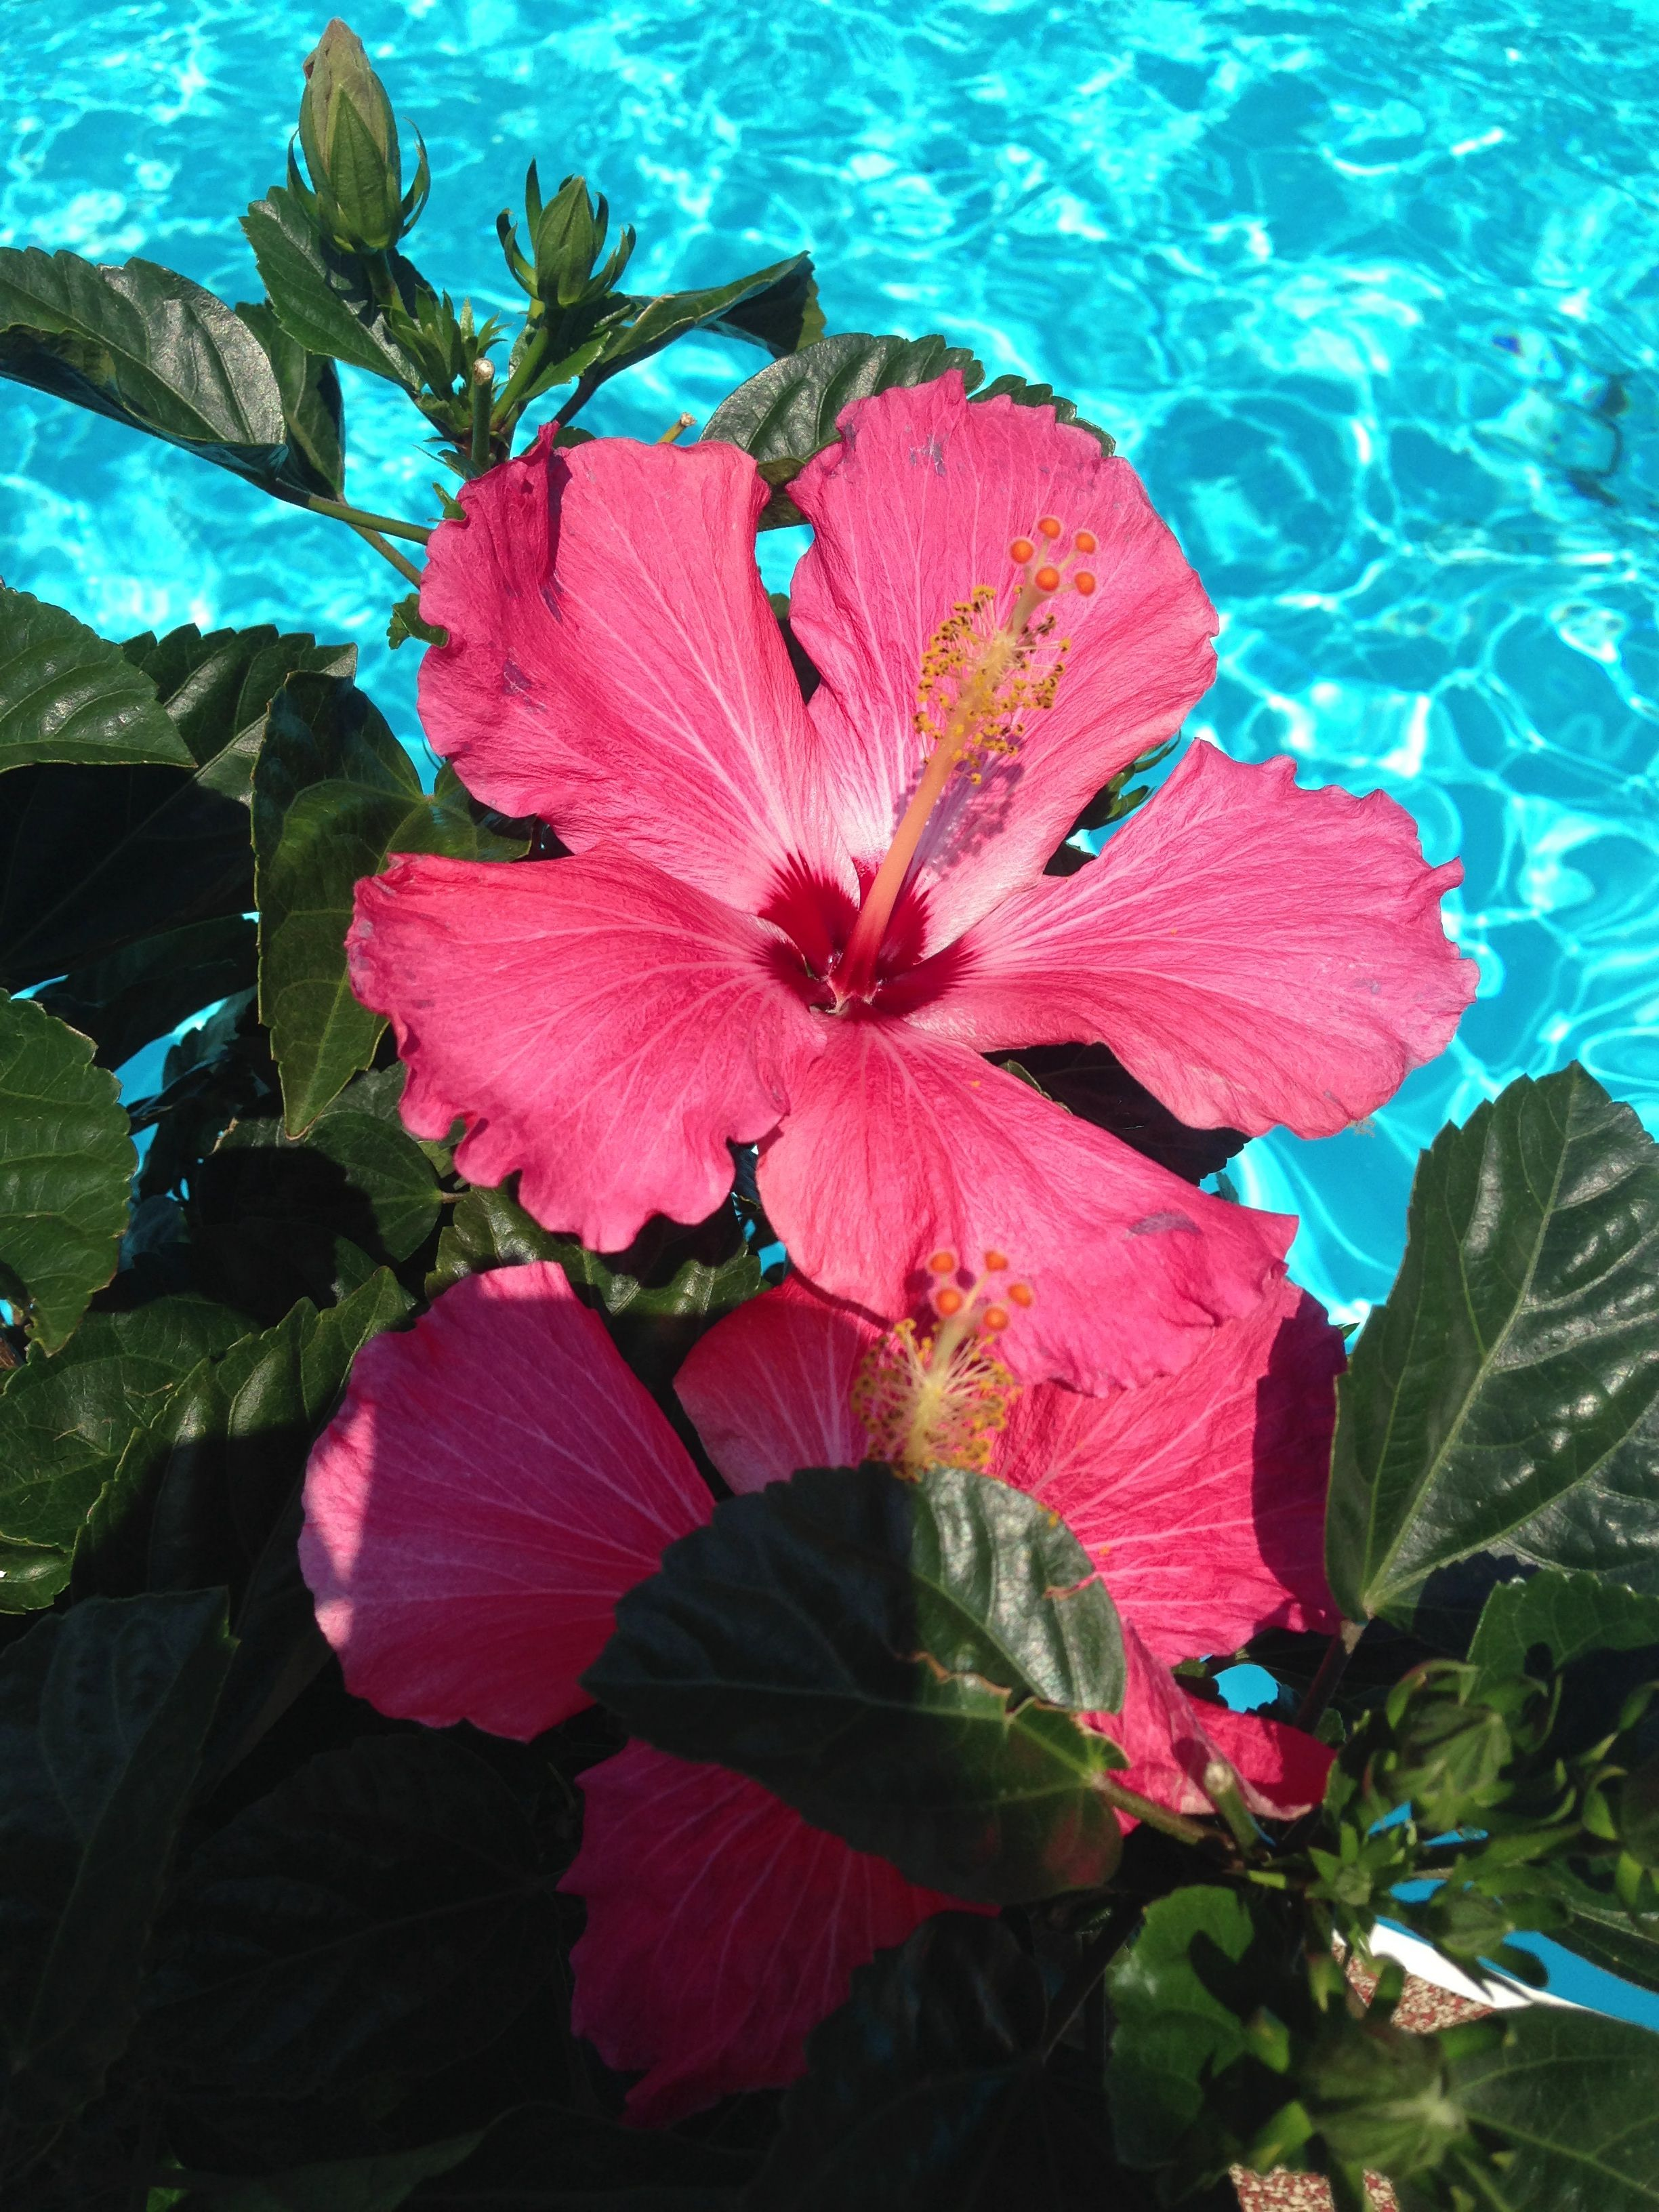 Beautiful Hibiscus by the Pool B l o o m in 2019 Flower 2448x3264